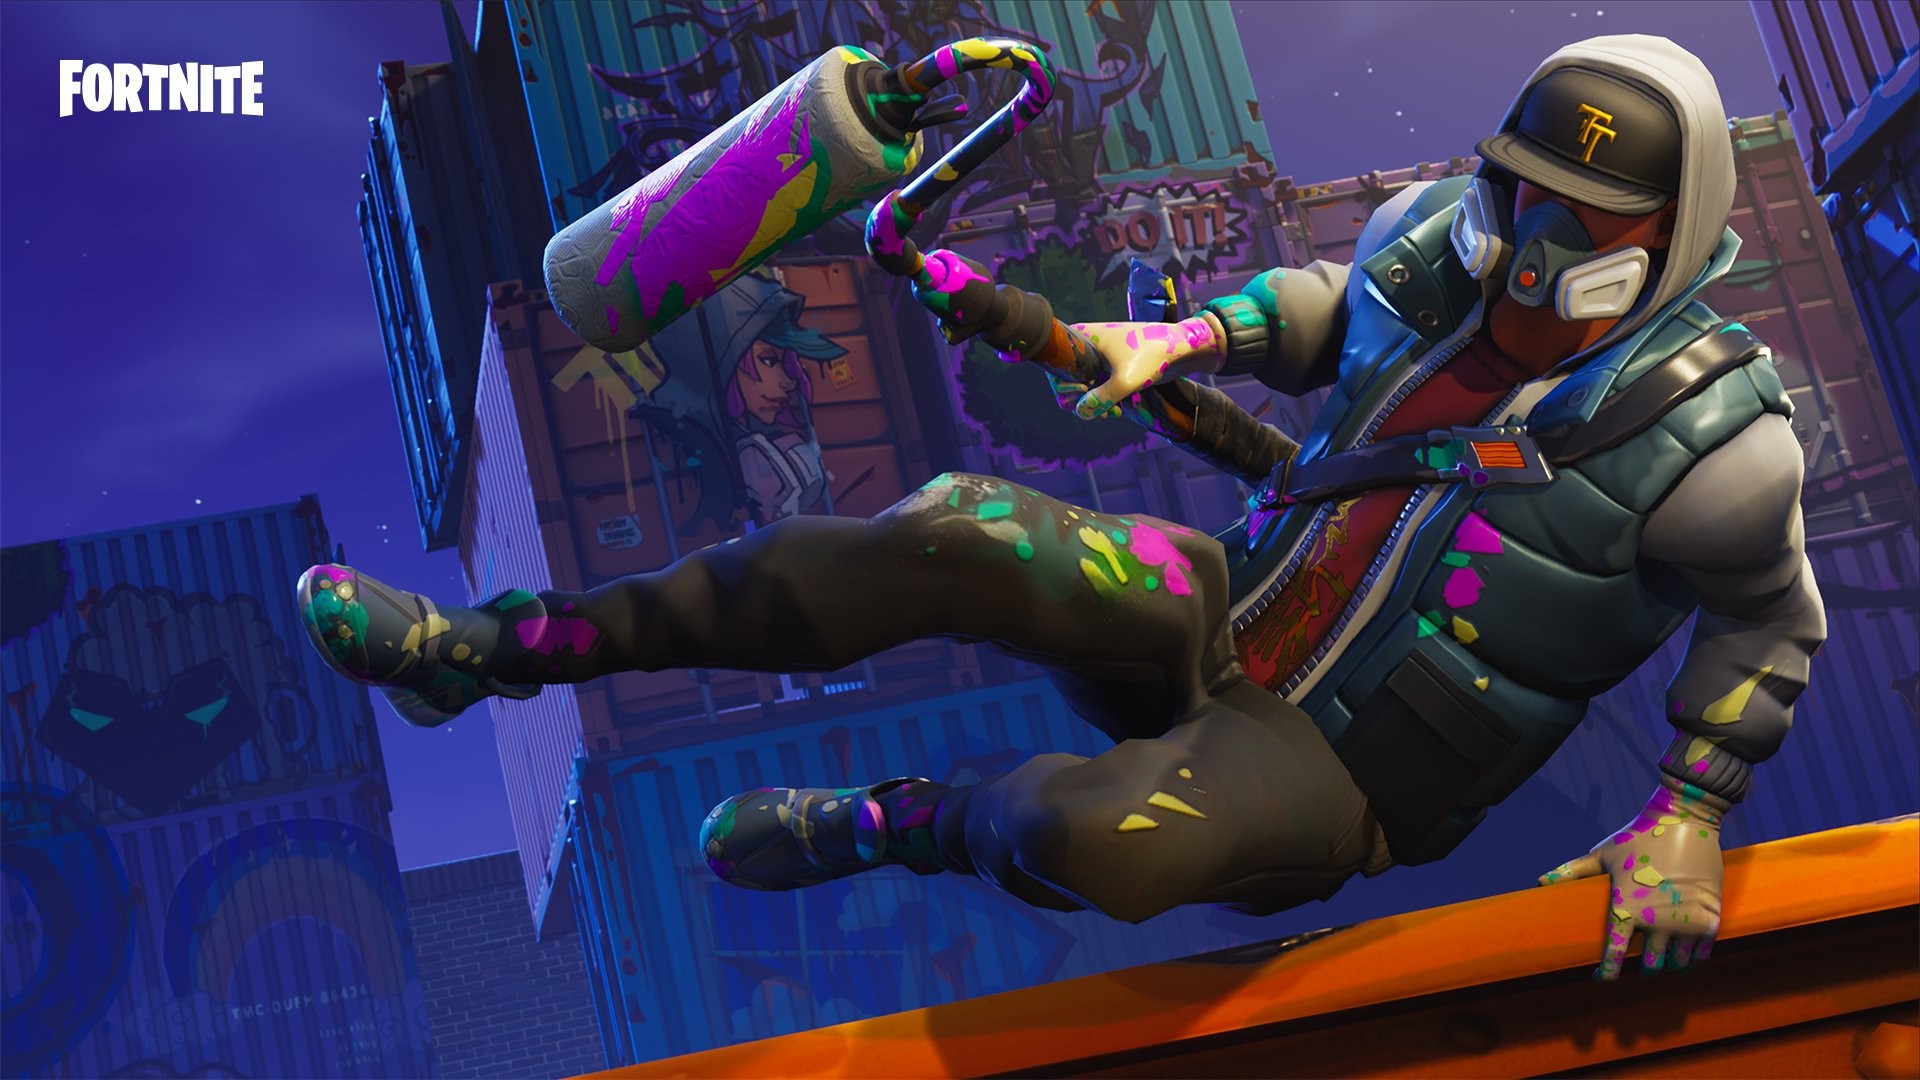 Fortnite Battle Royale Abstrakt Skin Hd Games 4k Wallpapers Images Backgrounds Photos And Pictures